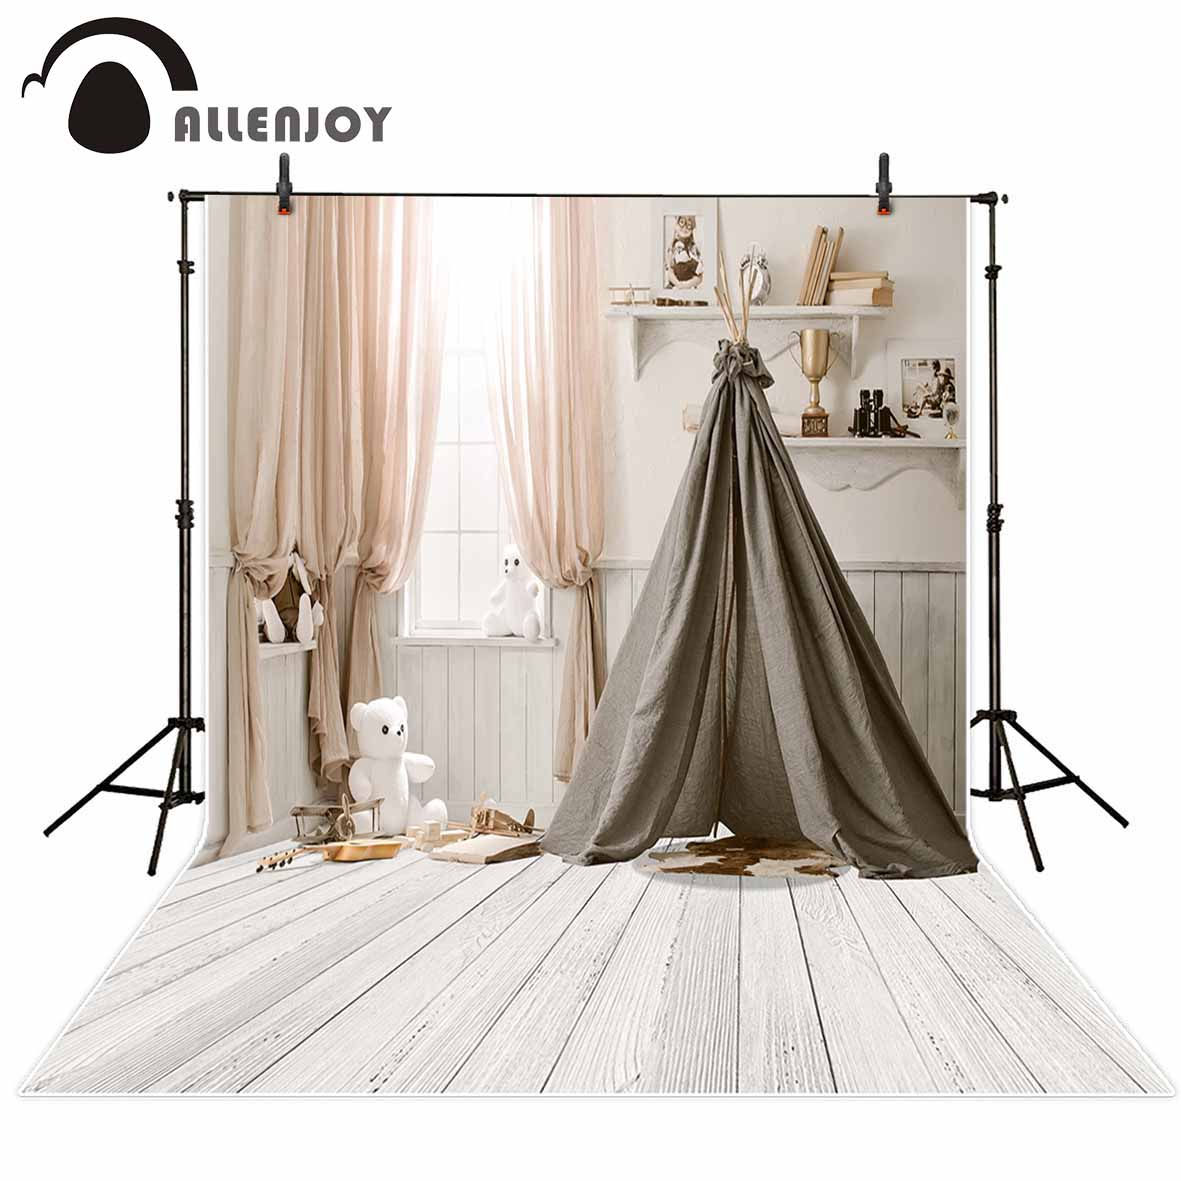 Allenjoy baby tent white wood floor backdrop board indoor room curtain lovely baby shower photography background photo studio photography background baby shower step and repeat allenjoy backdrop custom made any size any style